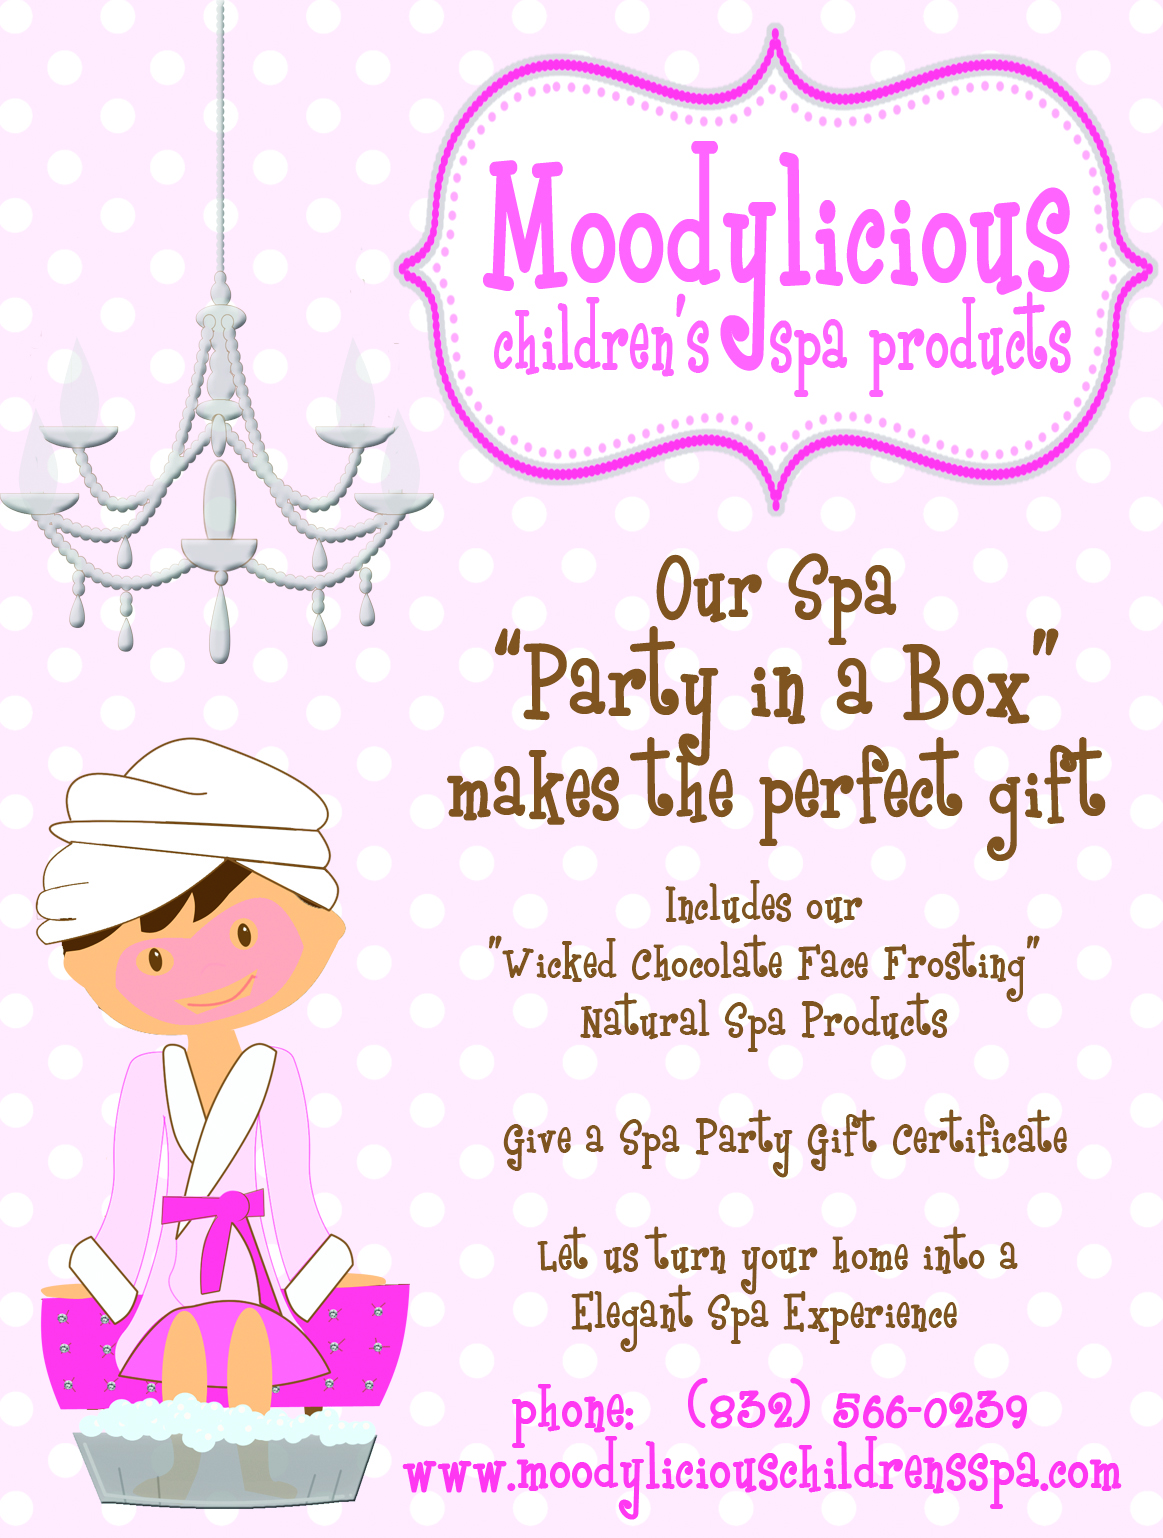 Moodylicious Spa Parties in Houston Texas | Moodylicious Children\'s Spa